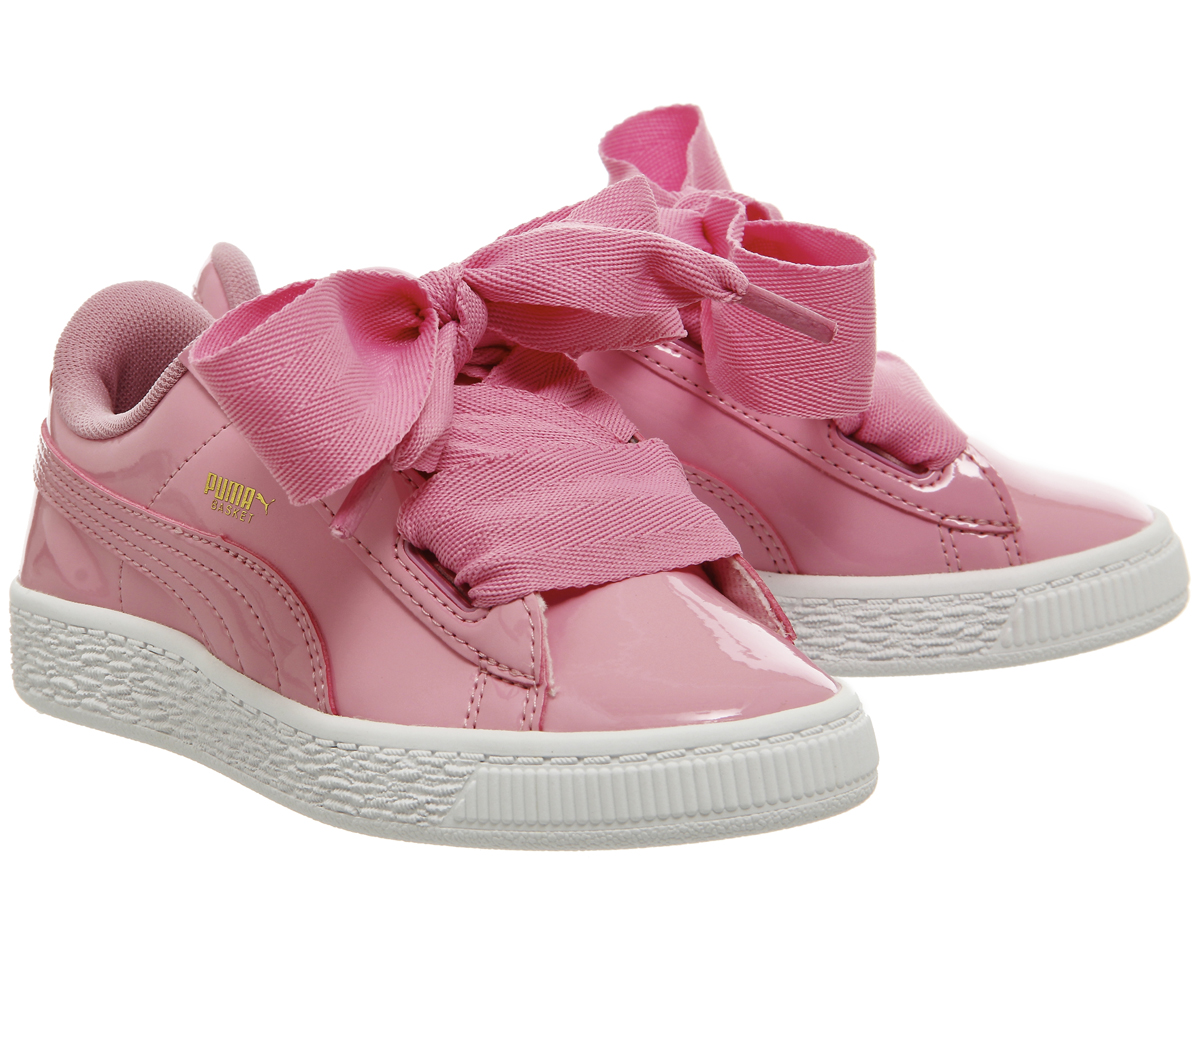 0711c36d Details about Kids Puma Basket Heart Ps Prism Pink Patent Kids